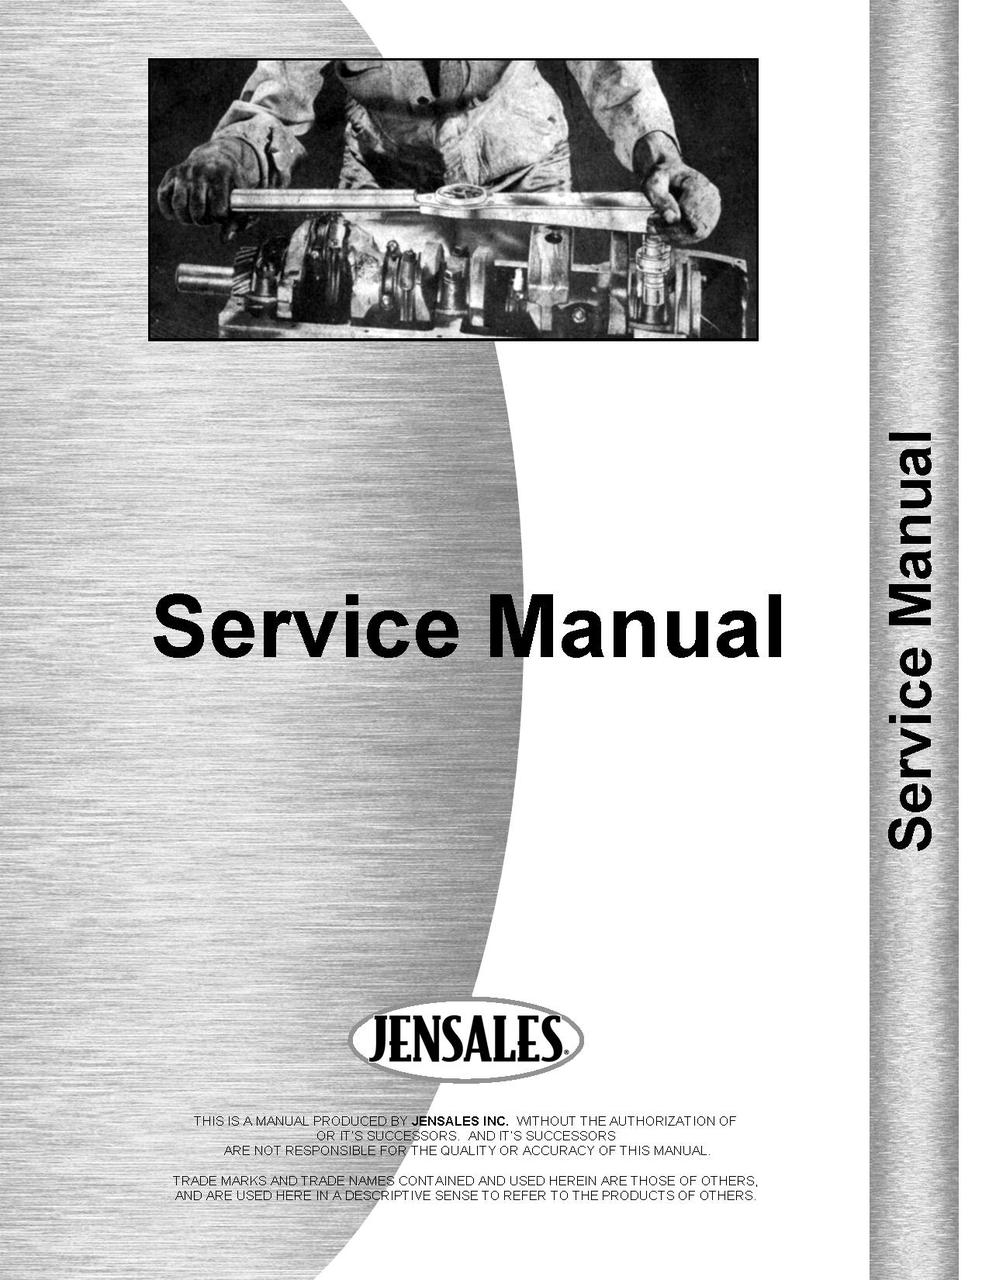 International Harvester 1066 Tractor Service Manual (HTIH-S766966)